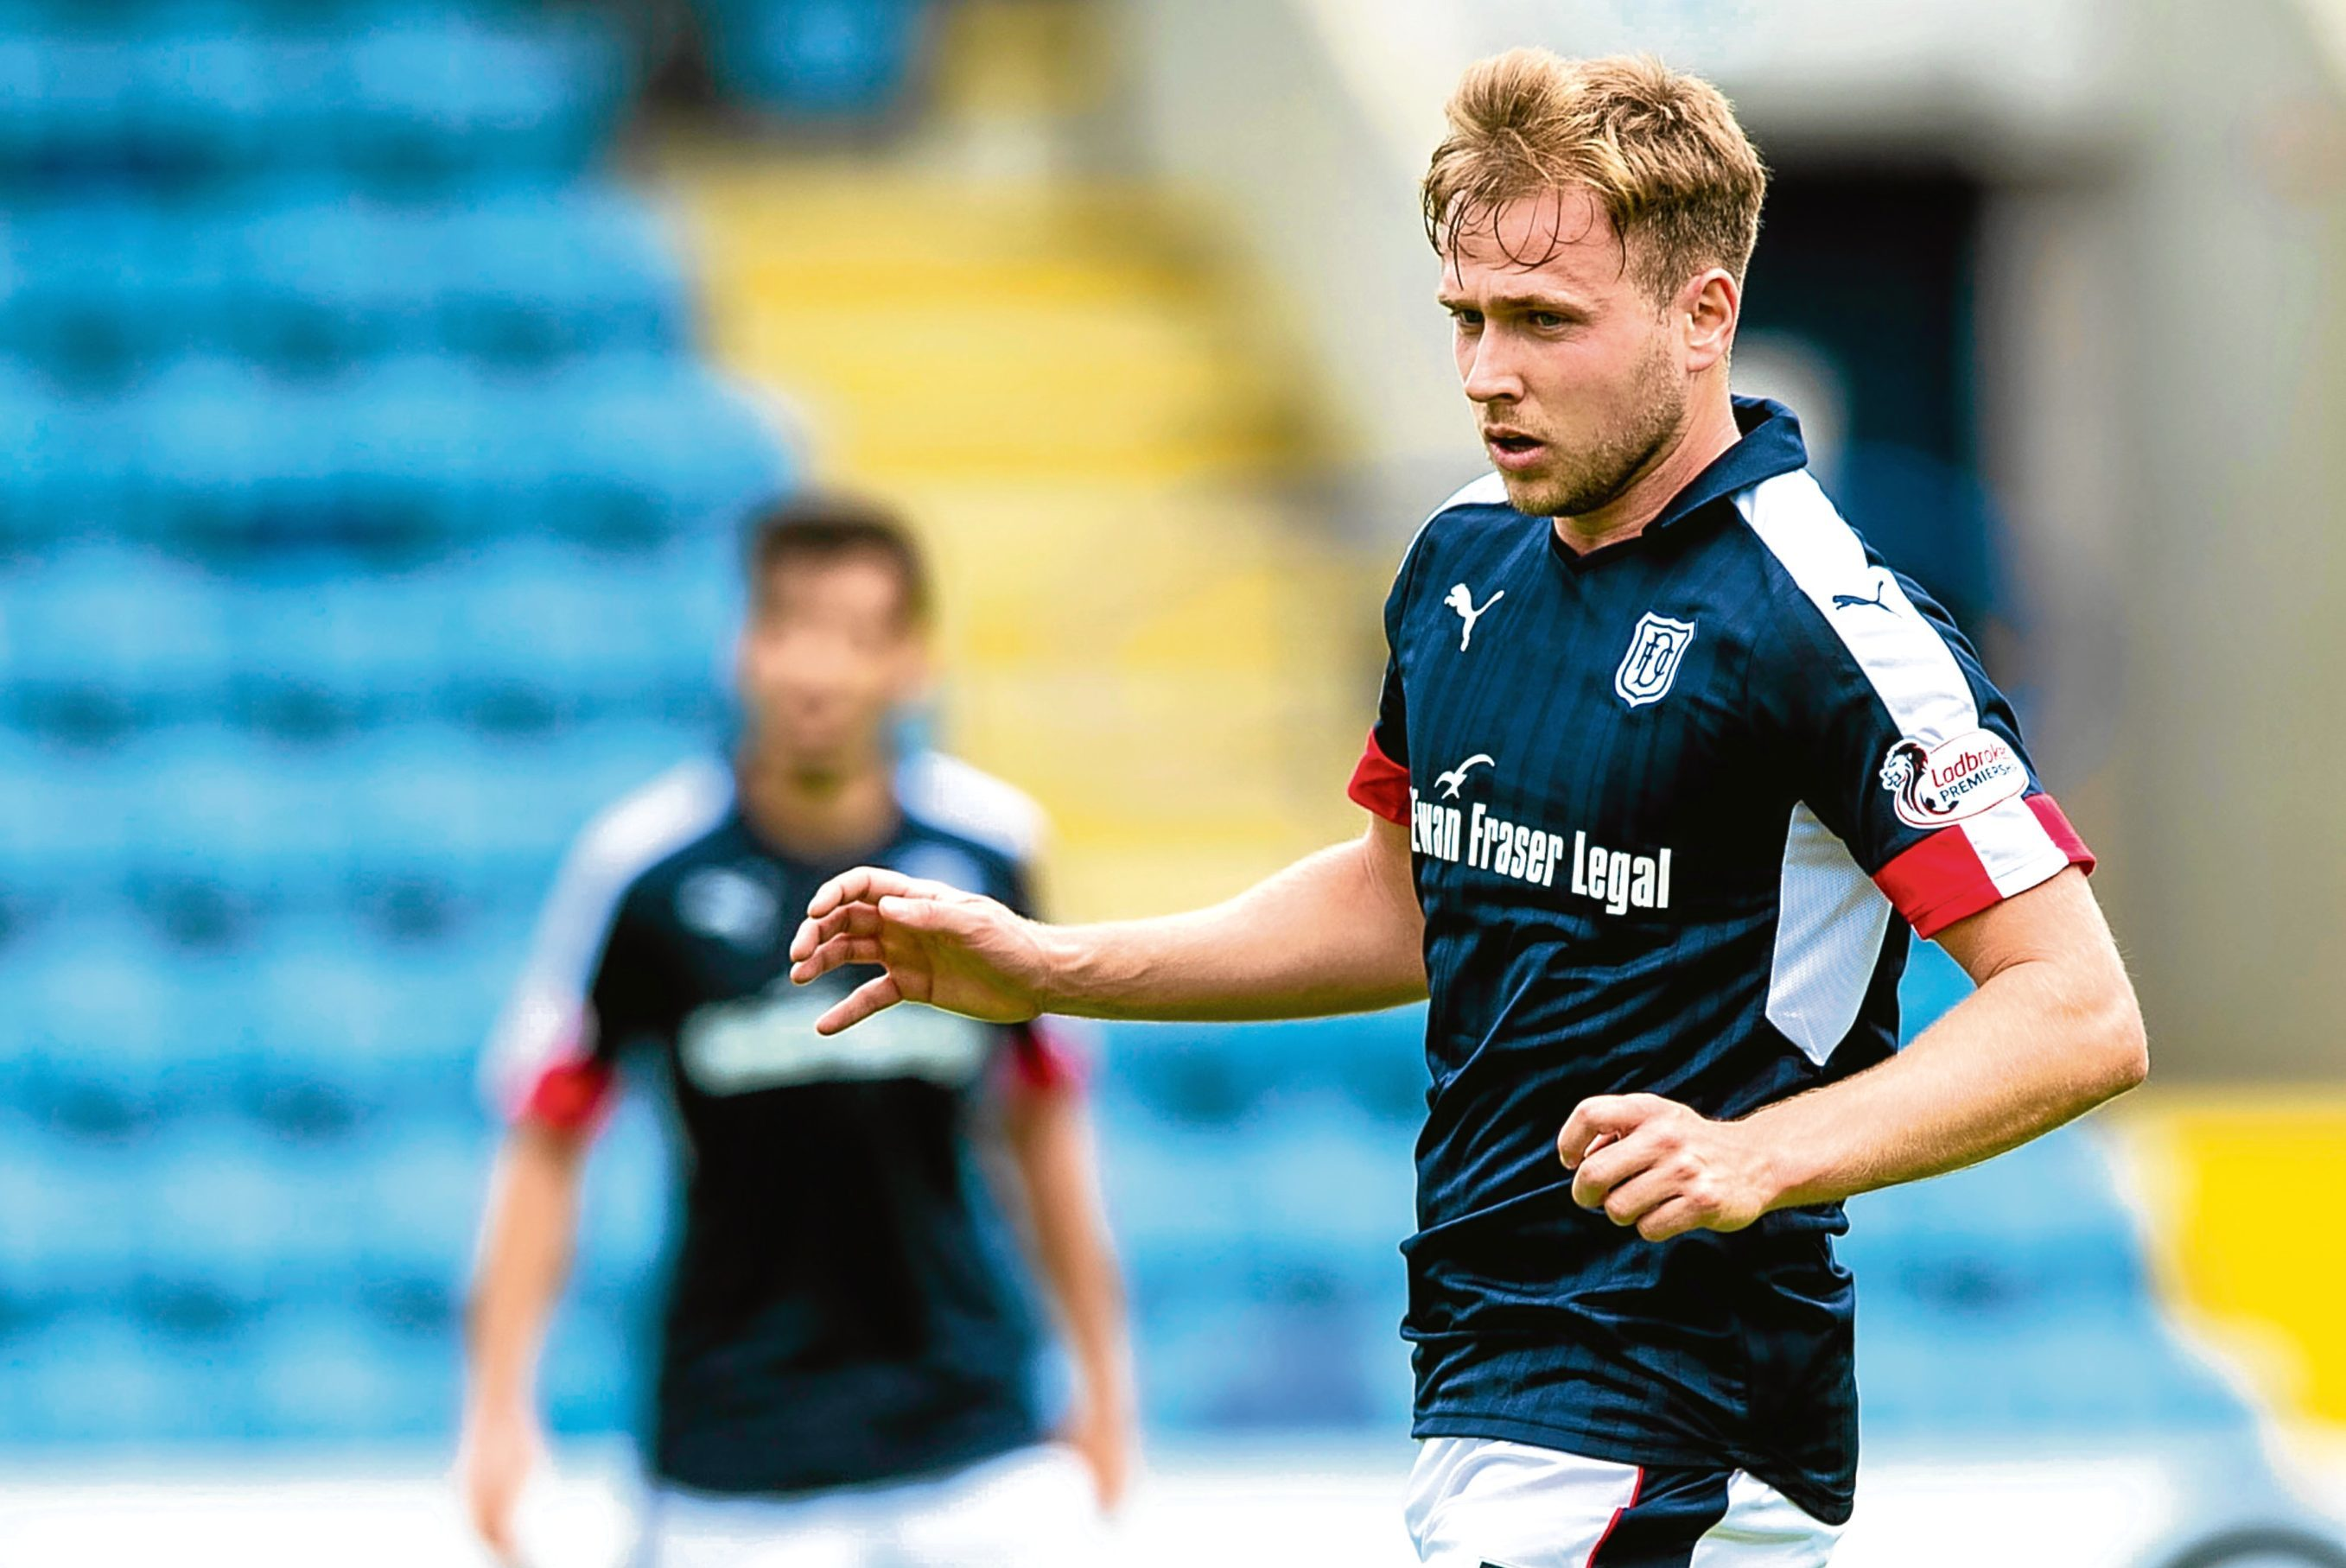 Dundee are holding out for a considerable sum for star forward Greg Stewart amid interest from clubs down south.